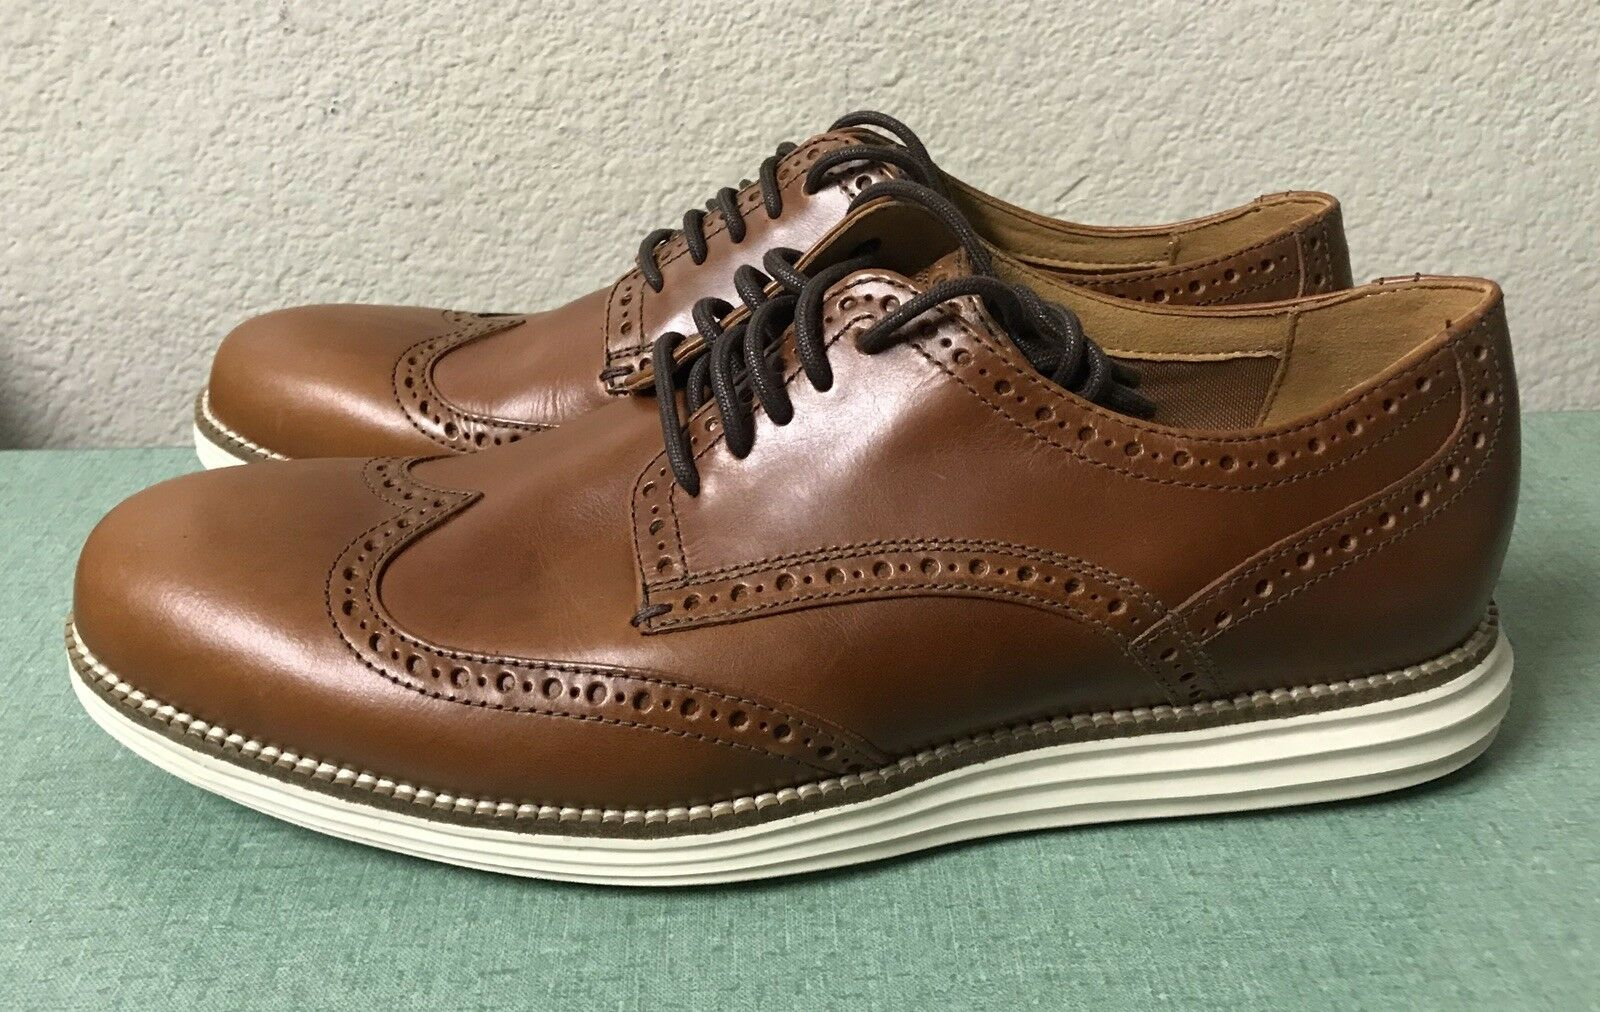 Cole Haan Grand Original Bout D'Aile Oxford Marron Homme Sz 9.5 C22793 NEUF